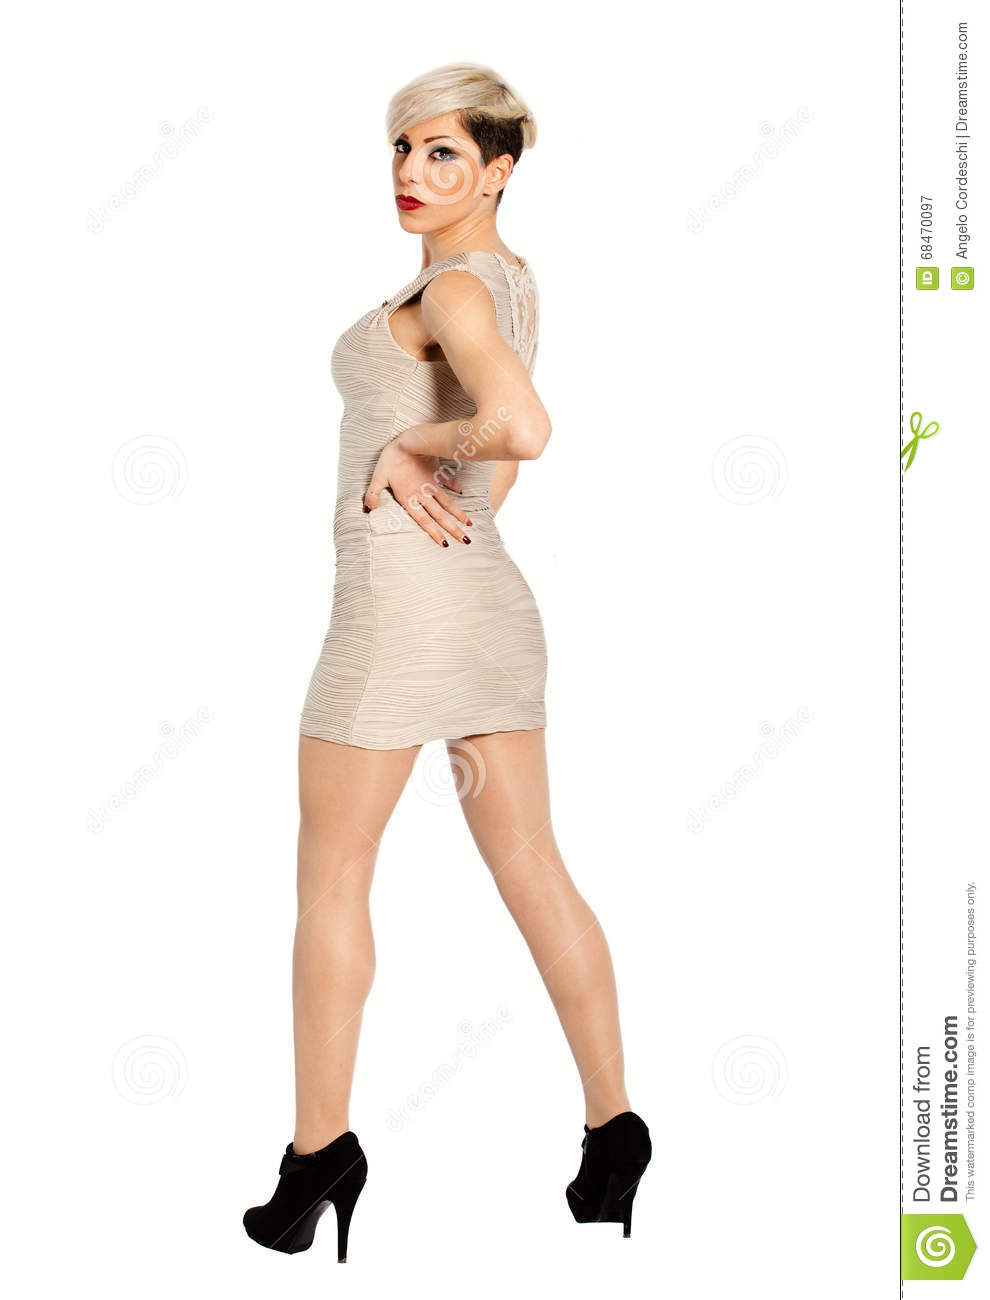 Attractive young blonde elegant woman on a white background. Full length